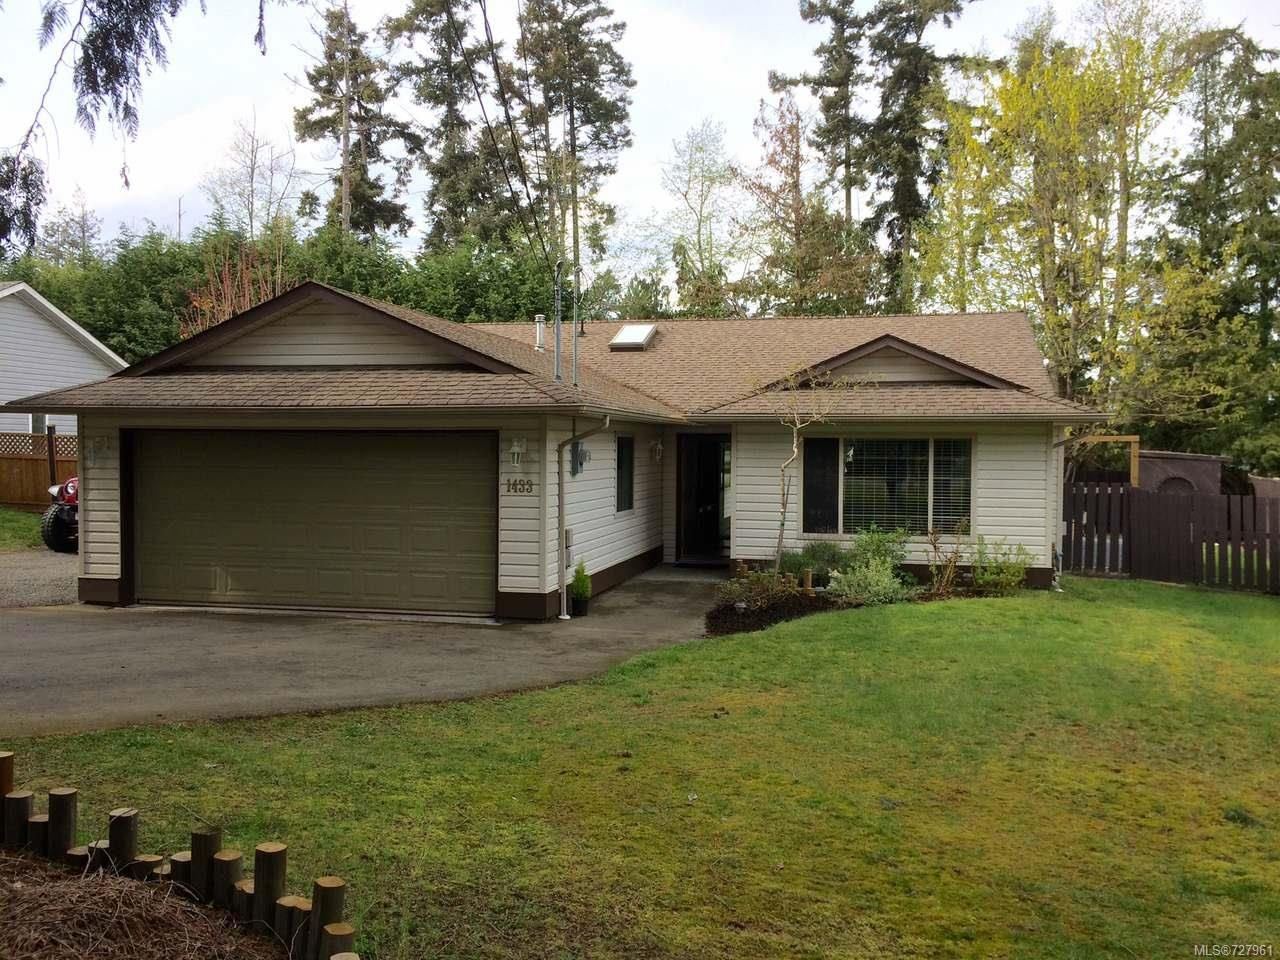 Photo 1: Photos: 1433 SUNRISE DRIVE in FRENCH CREEK: PQ French Creek House for sale (Parksville/Qualicum)  : MLS®# 727961